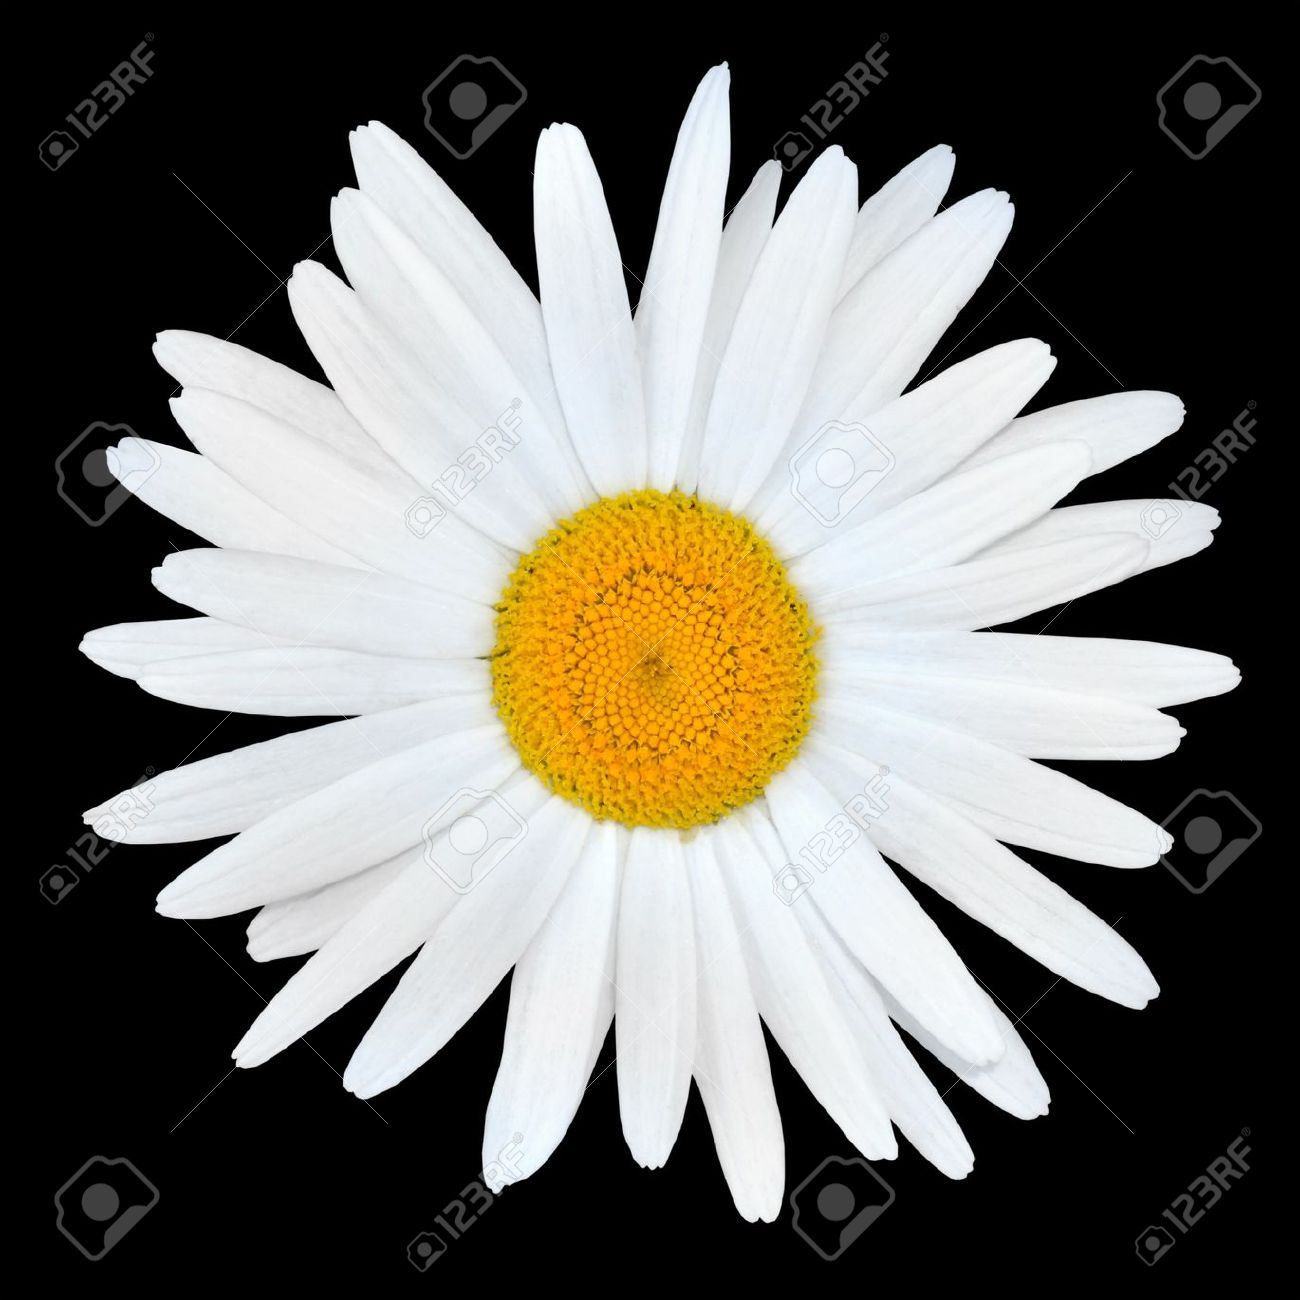 10017595 White Chamomile Daisy Flower With Yellow Center Isolated On